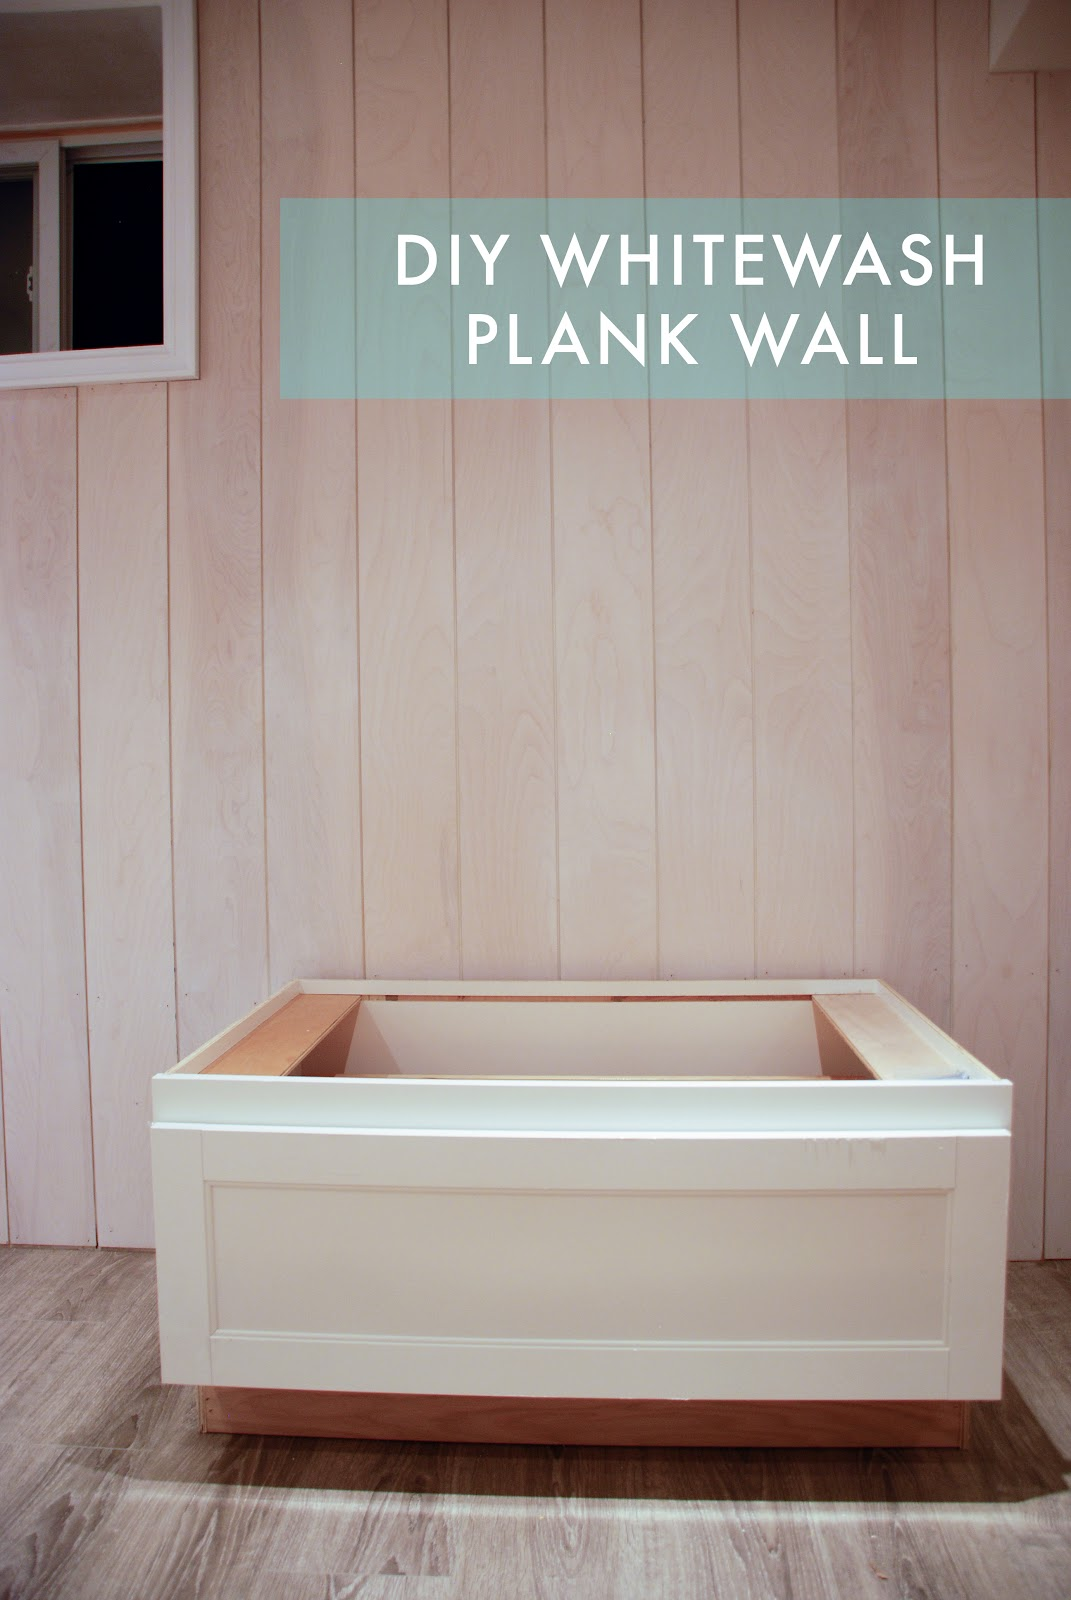 Part II: DIY Whitewashed Plank Walls